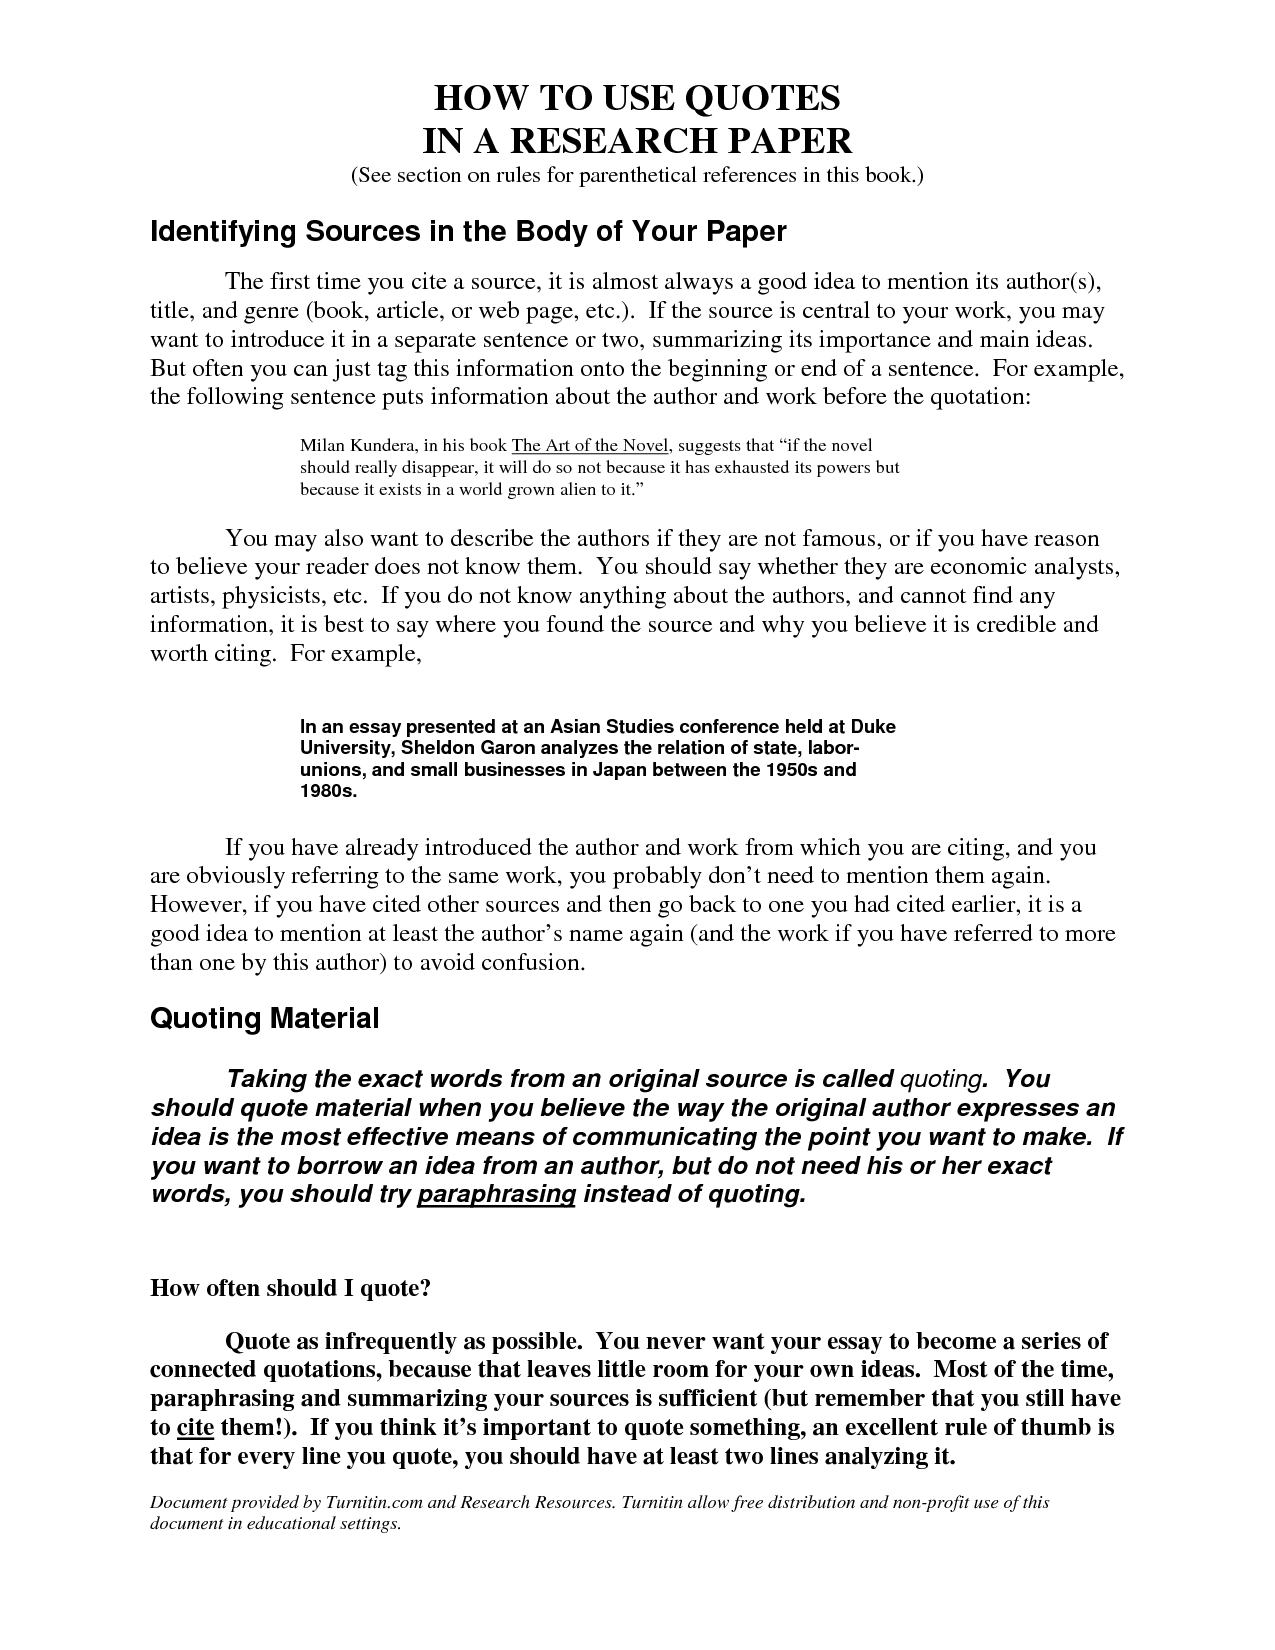 004 Essay Example Quotes Best Solutions Of Writing In Essays Marvelous Embedding On Incredible Topic Wise For Upsc Internet Hindi About Life Full